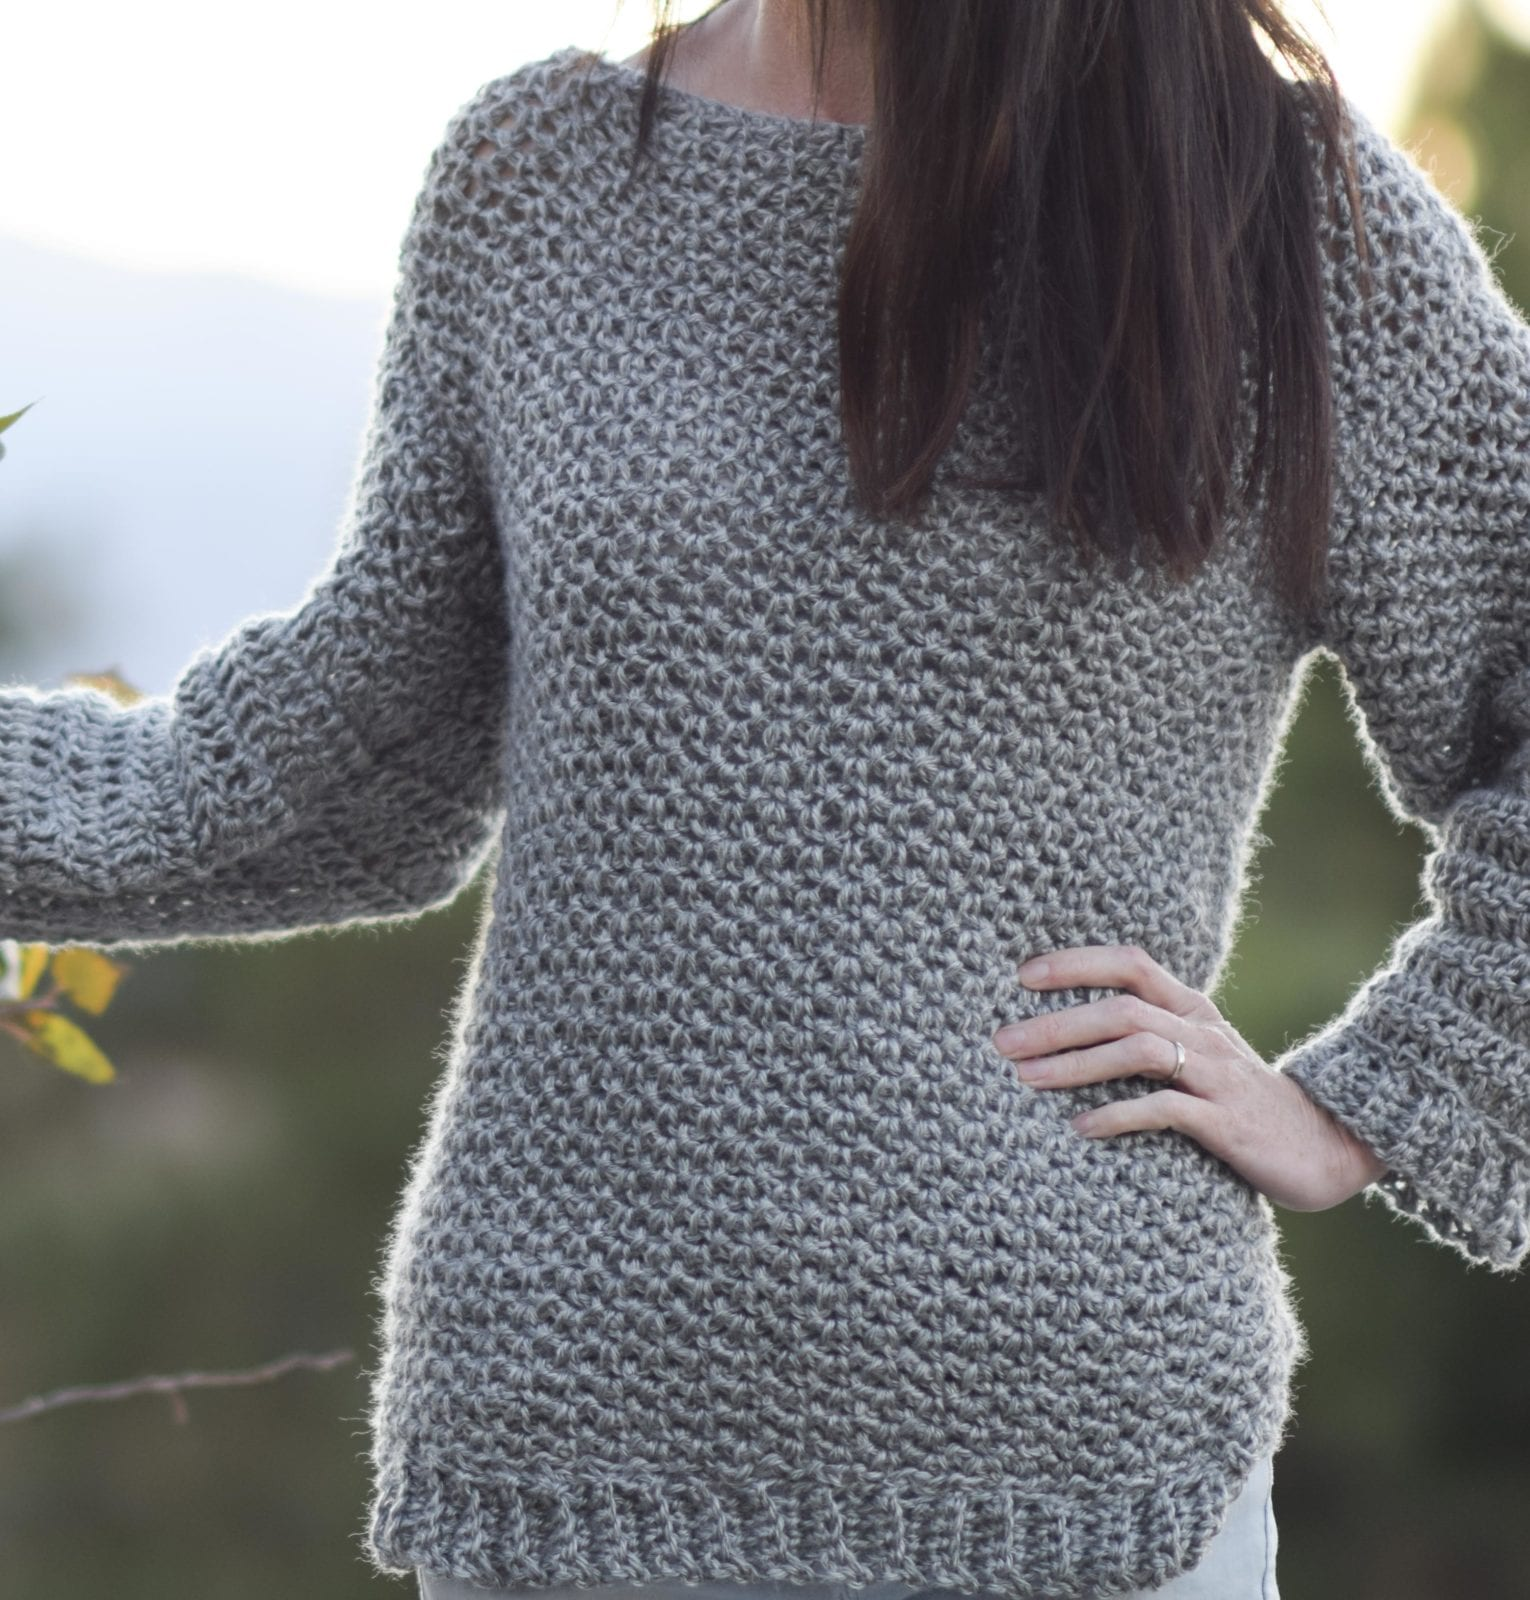 Free Crochet Patterns That Look Knit - Sewrella